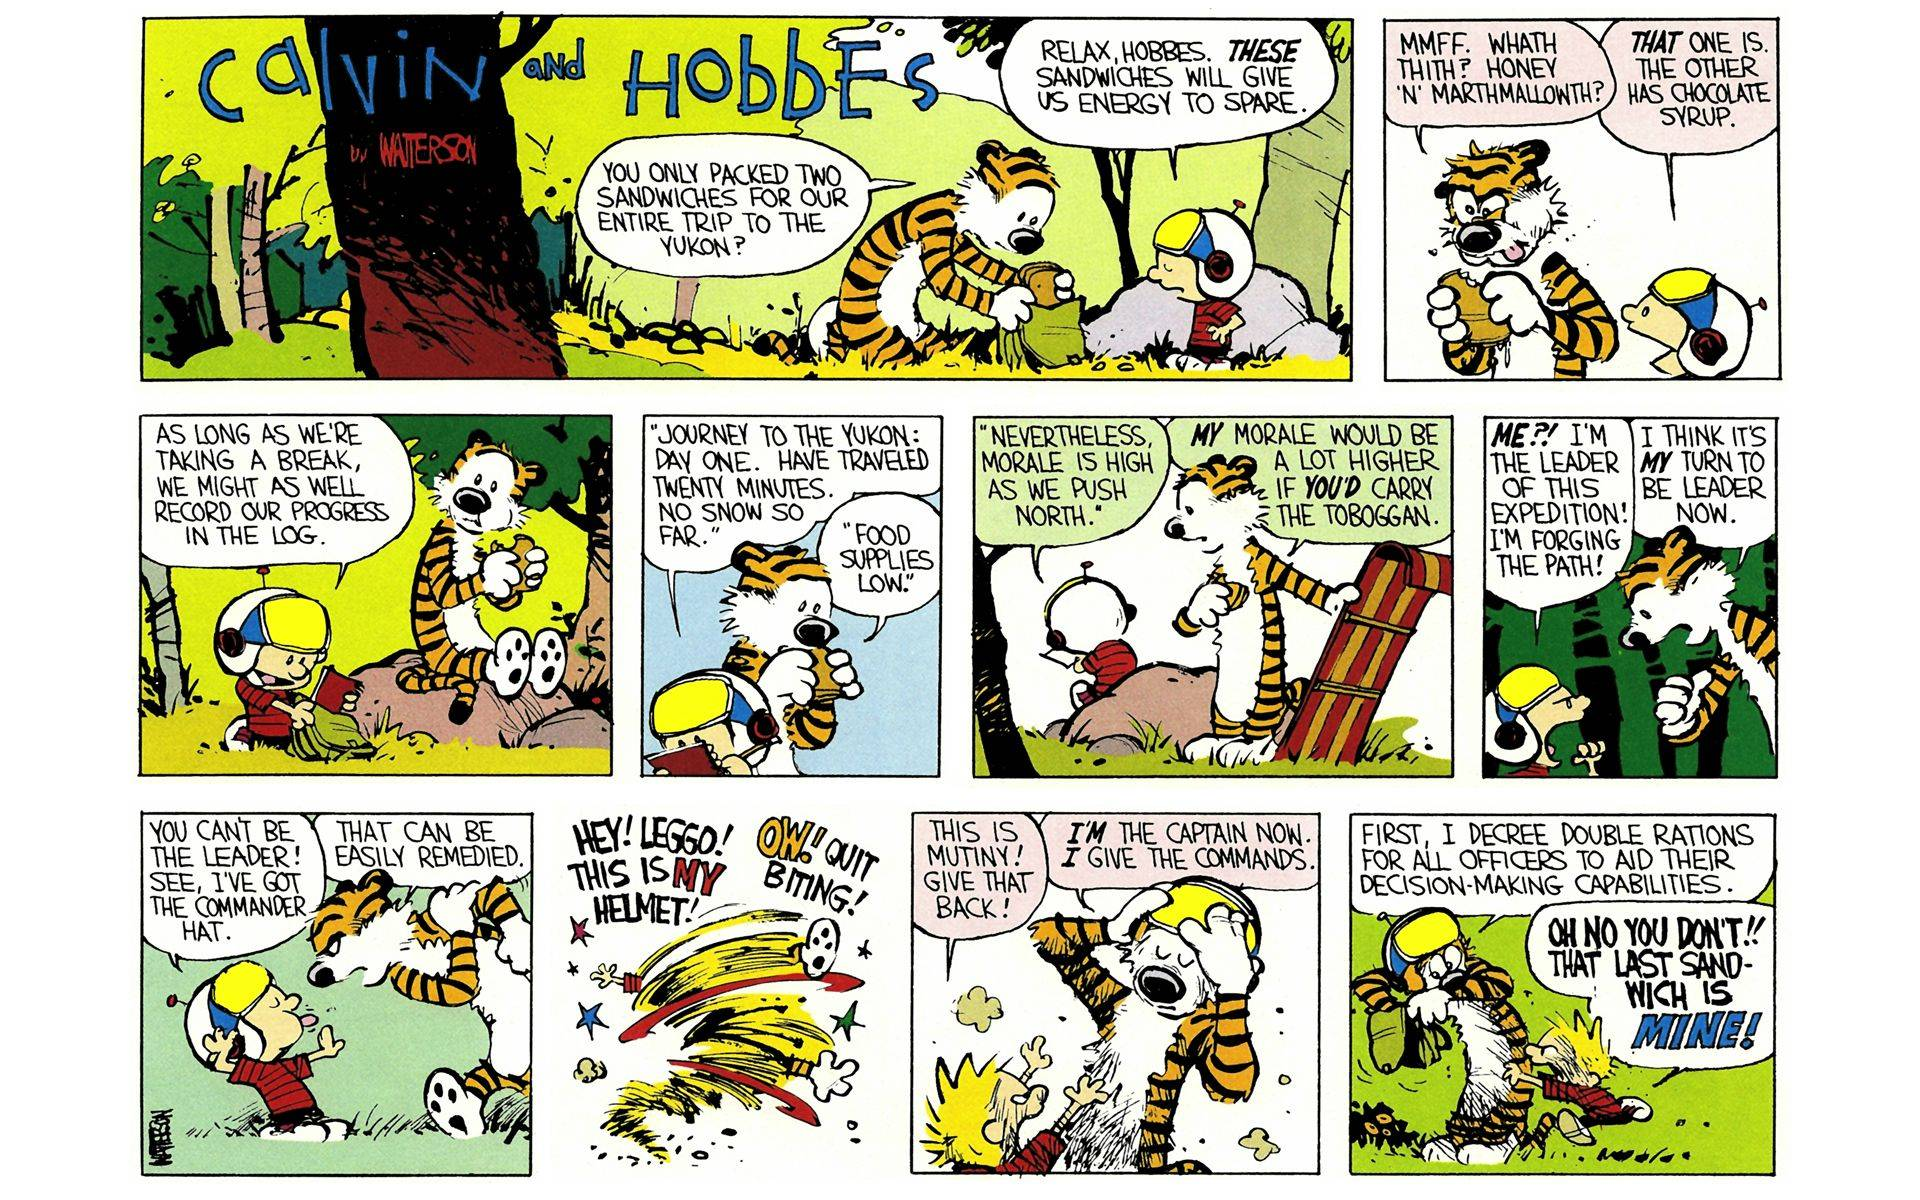 Calvin and Hobbes Yukon Ho! review